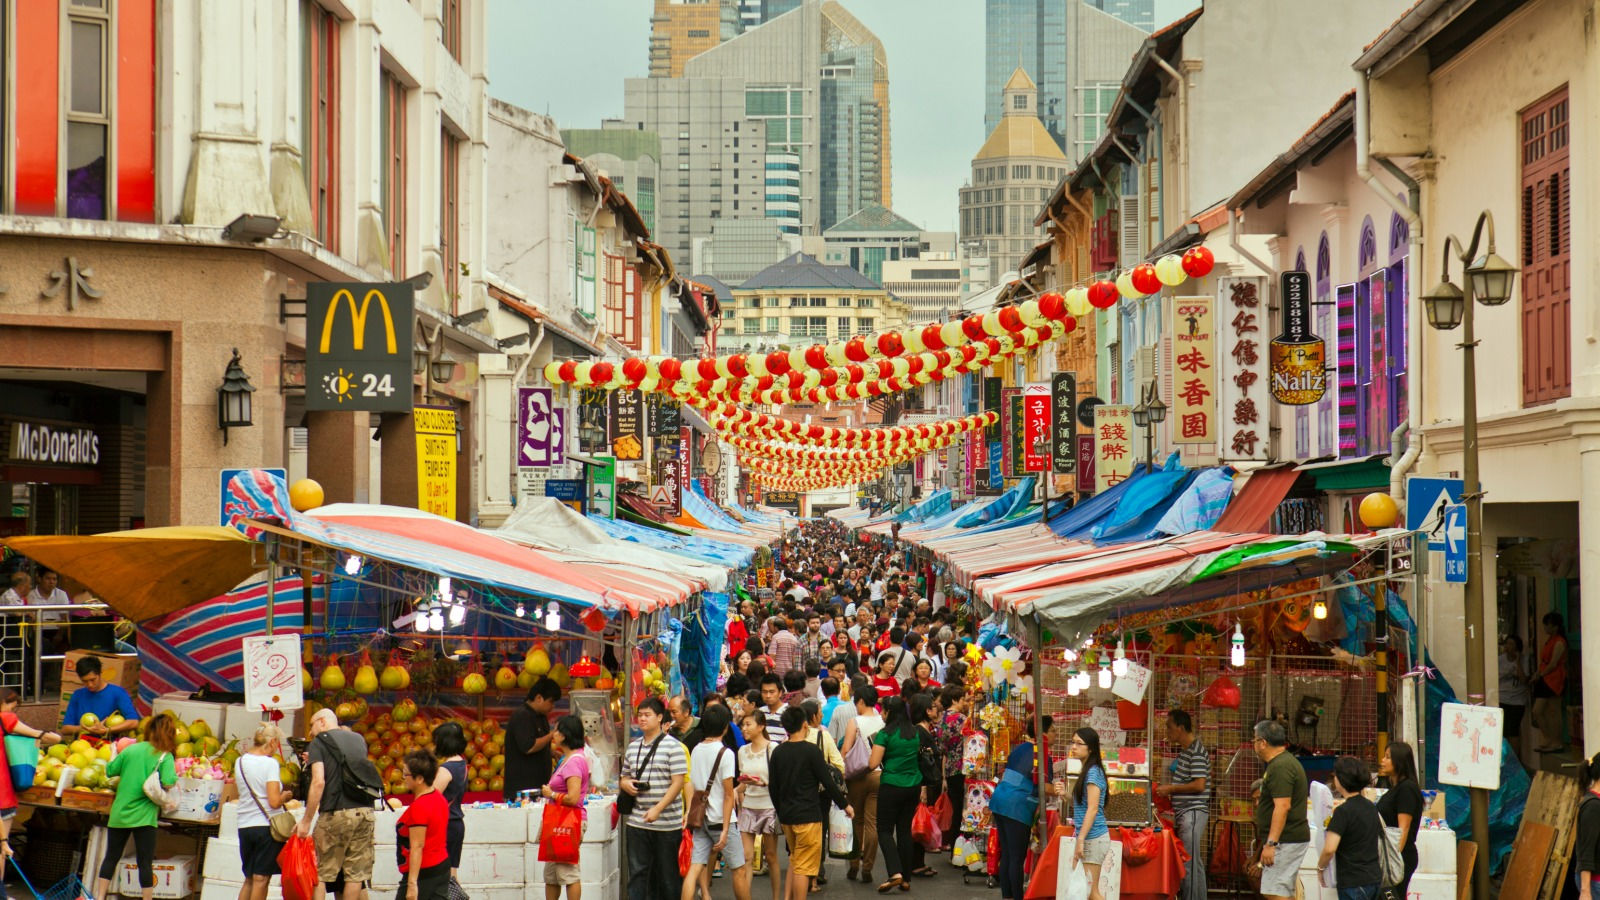 Chinatown, a vibrant enclave of old and new